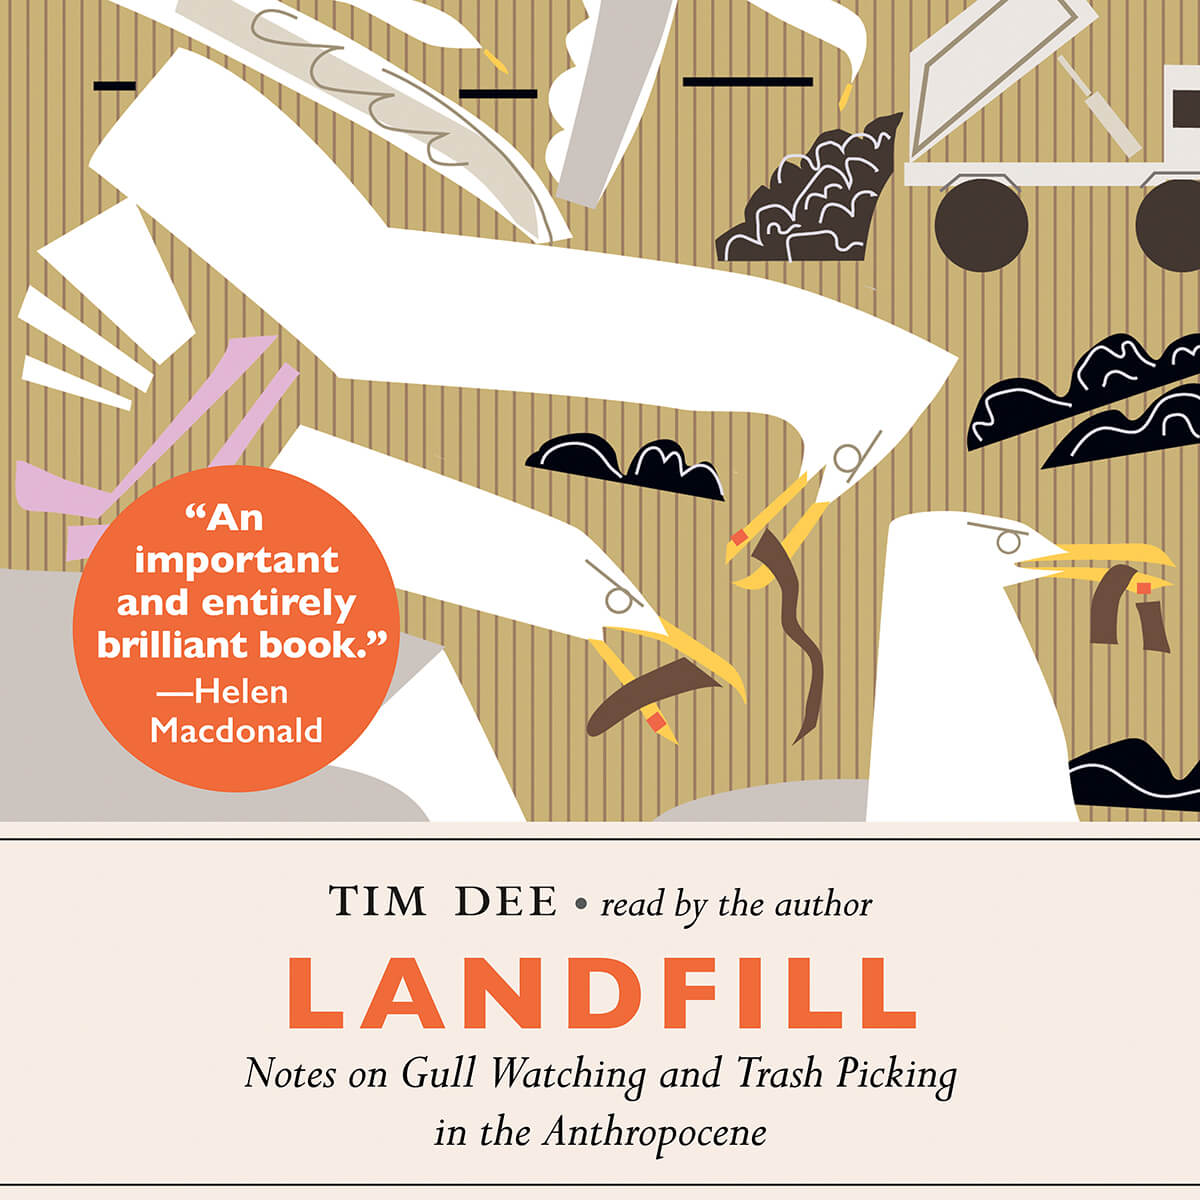 Landfill_cover_01_17_19_lores